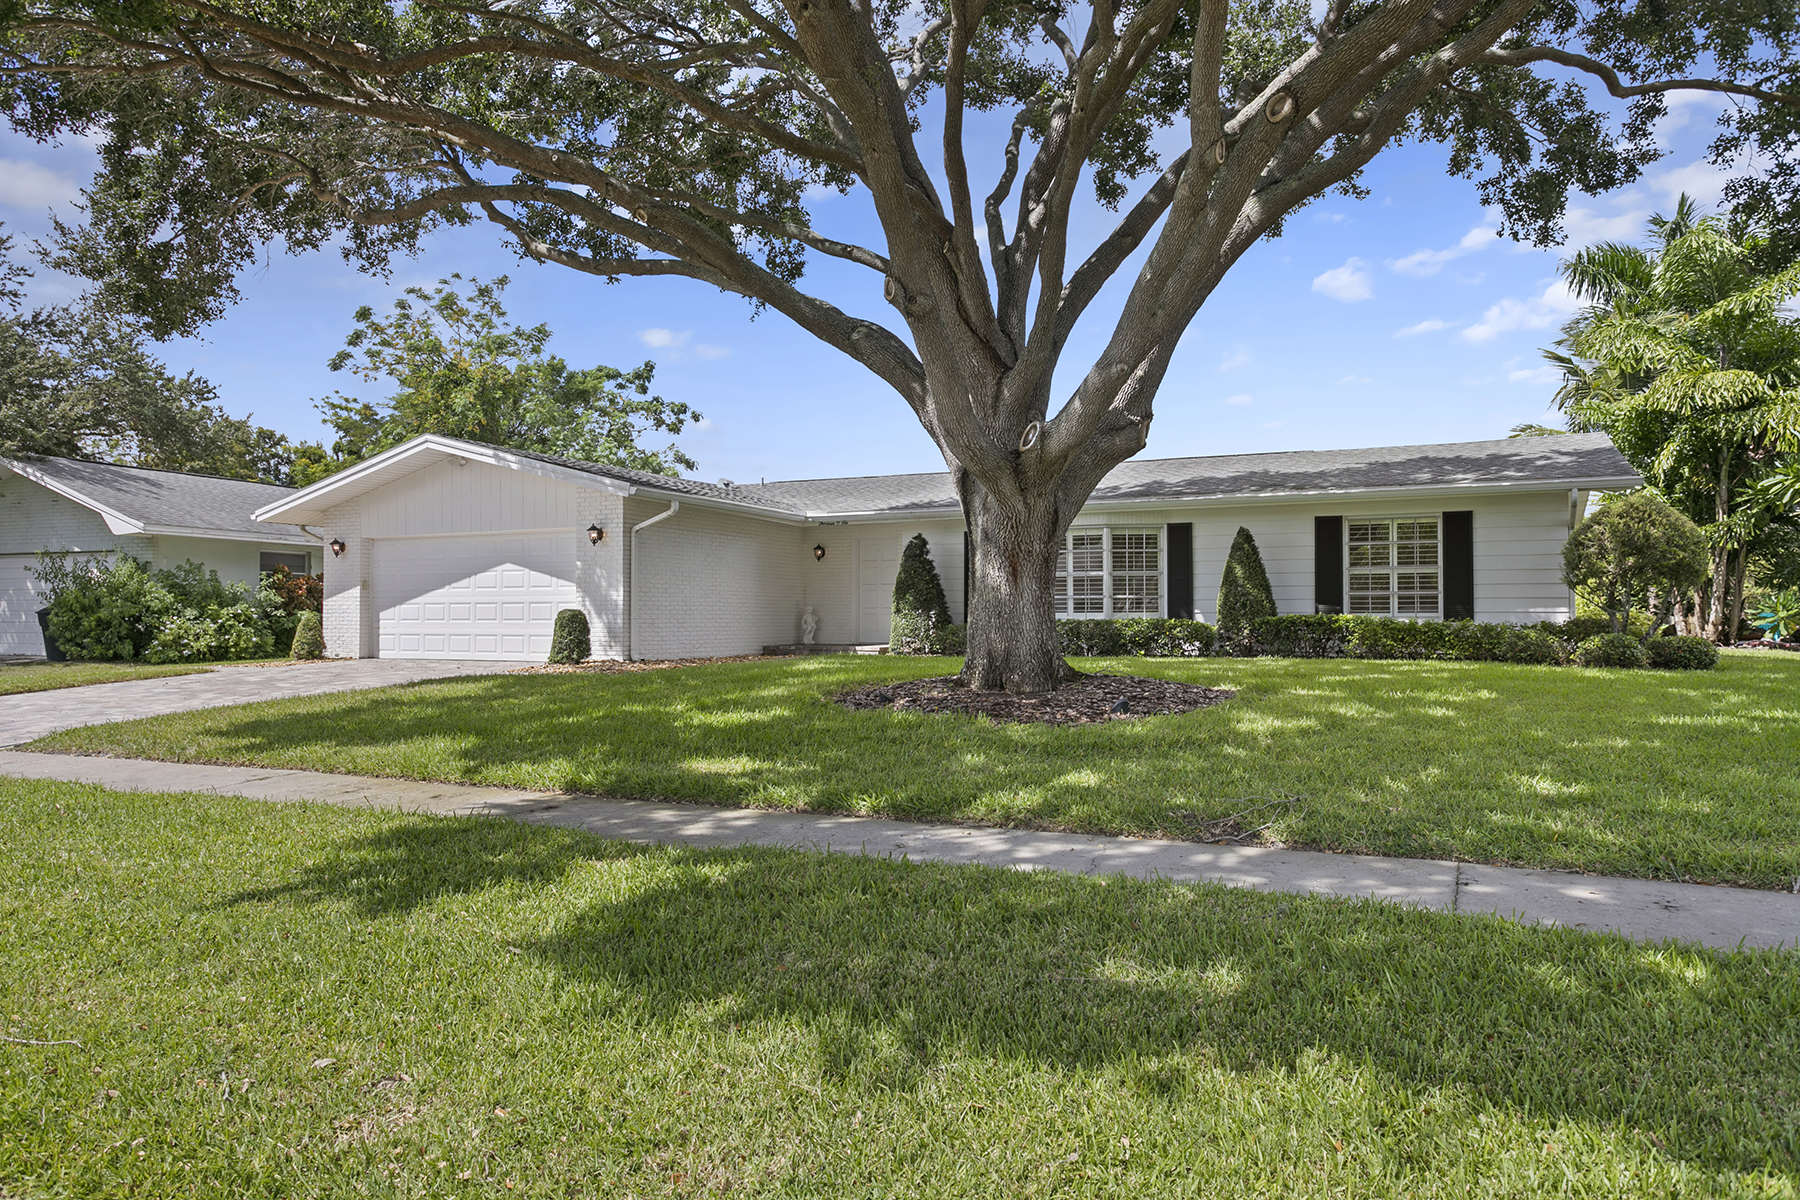 Single Family Homes for Sale at 1306 Alameda Ave, Clearwater, Florida 33759 United States